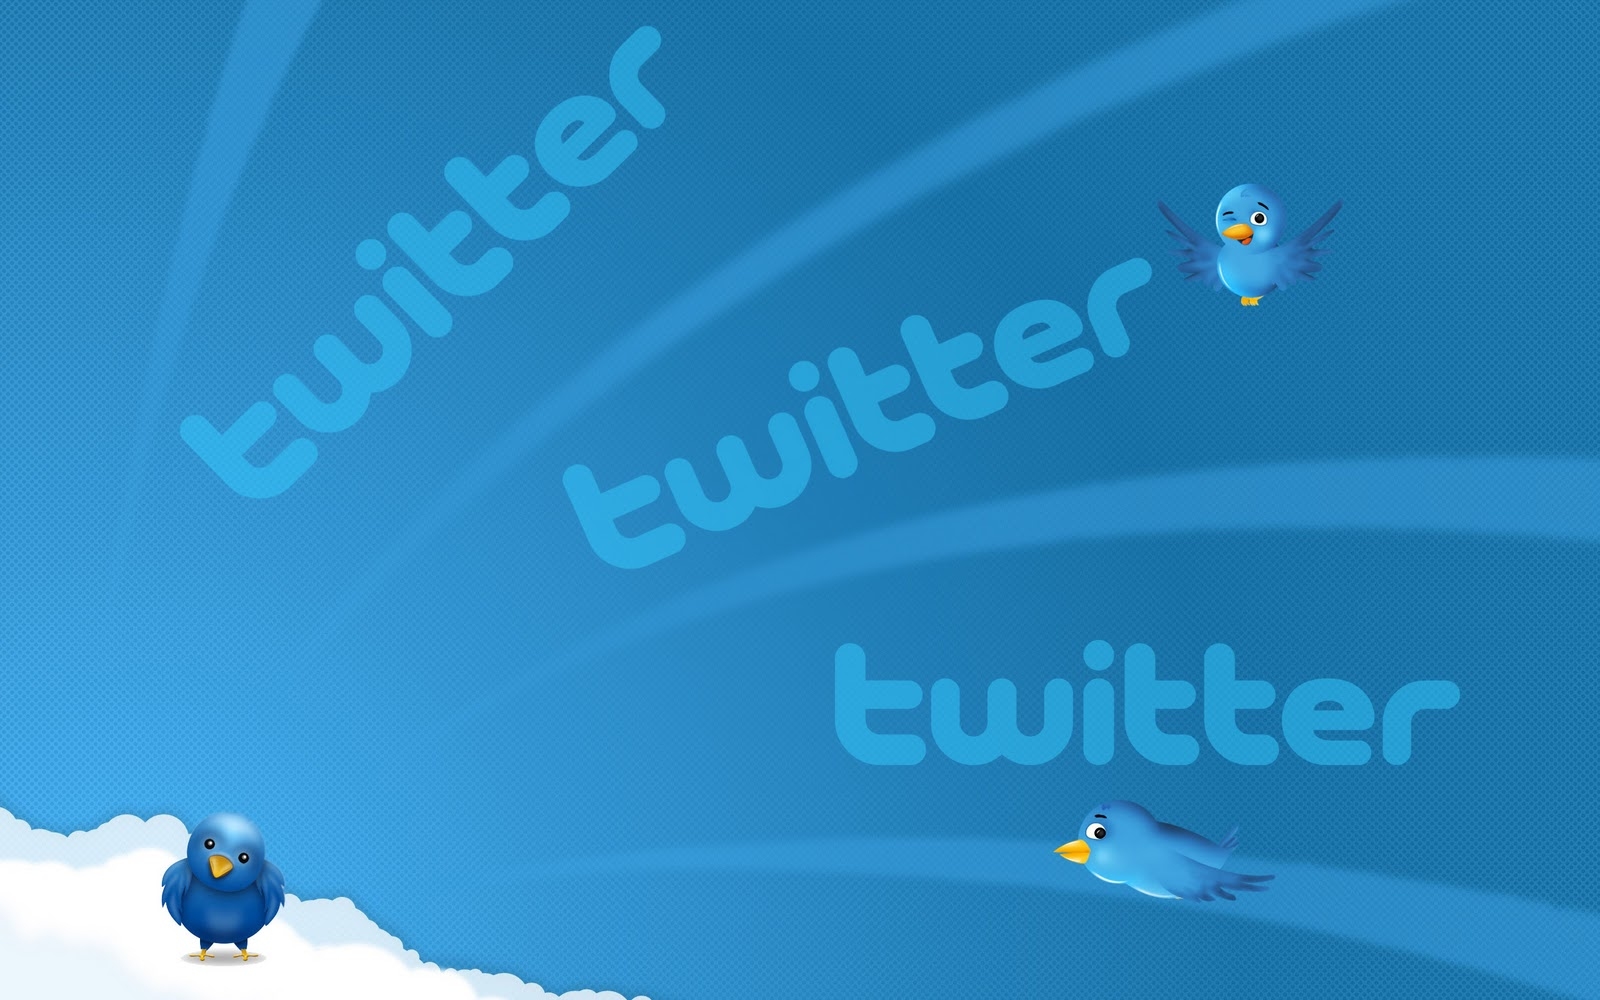 12 Best Cute Free Twitter Backgrounds Wallpapers